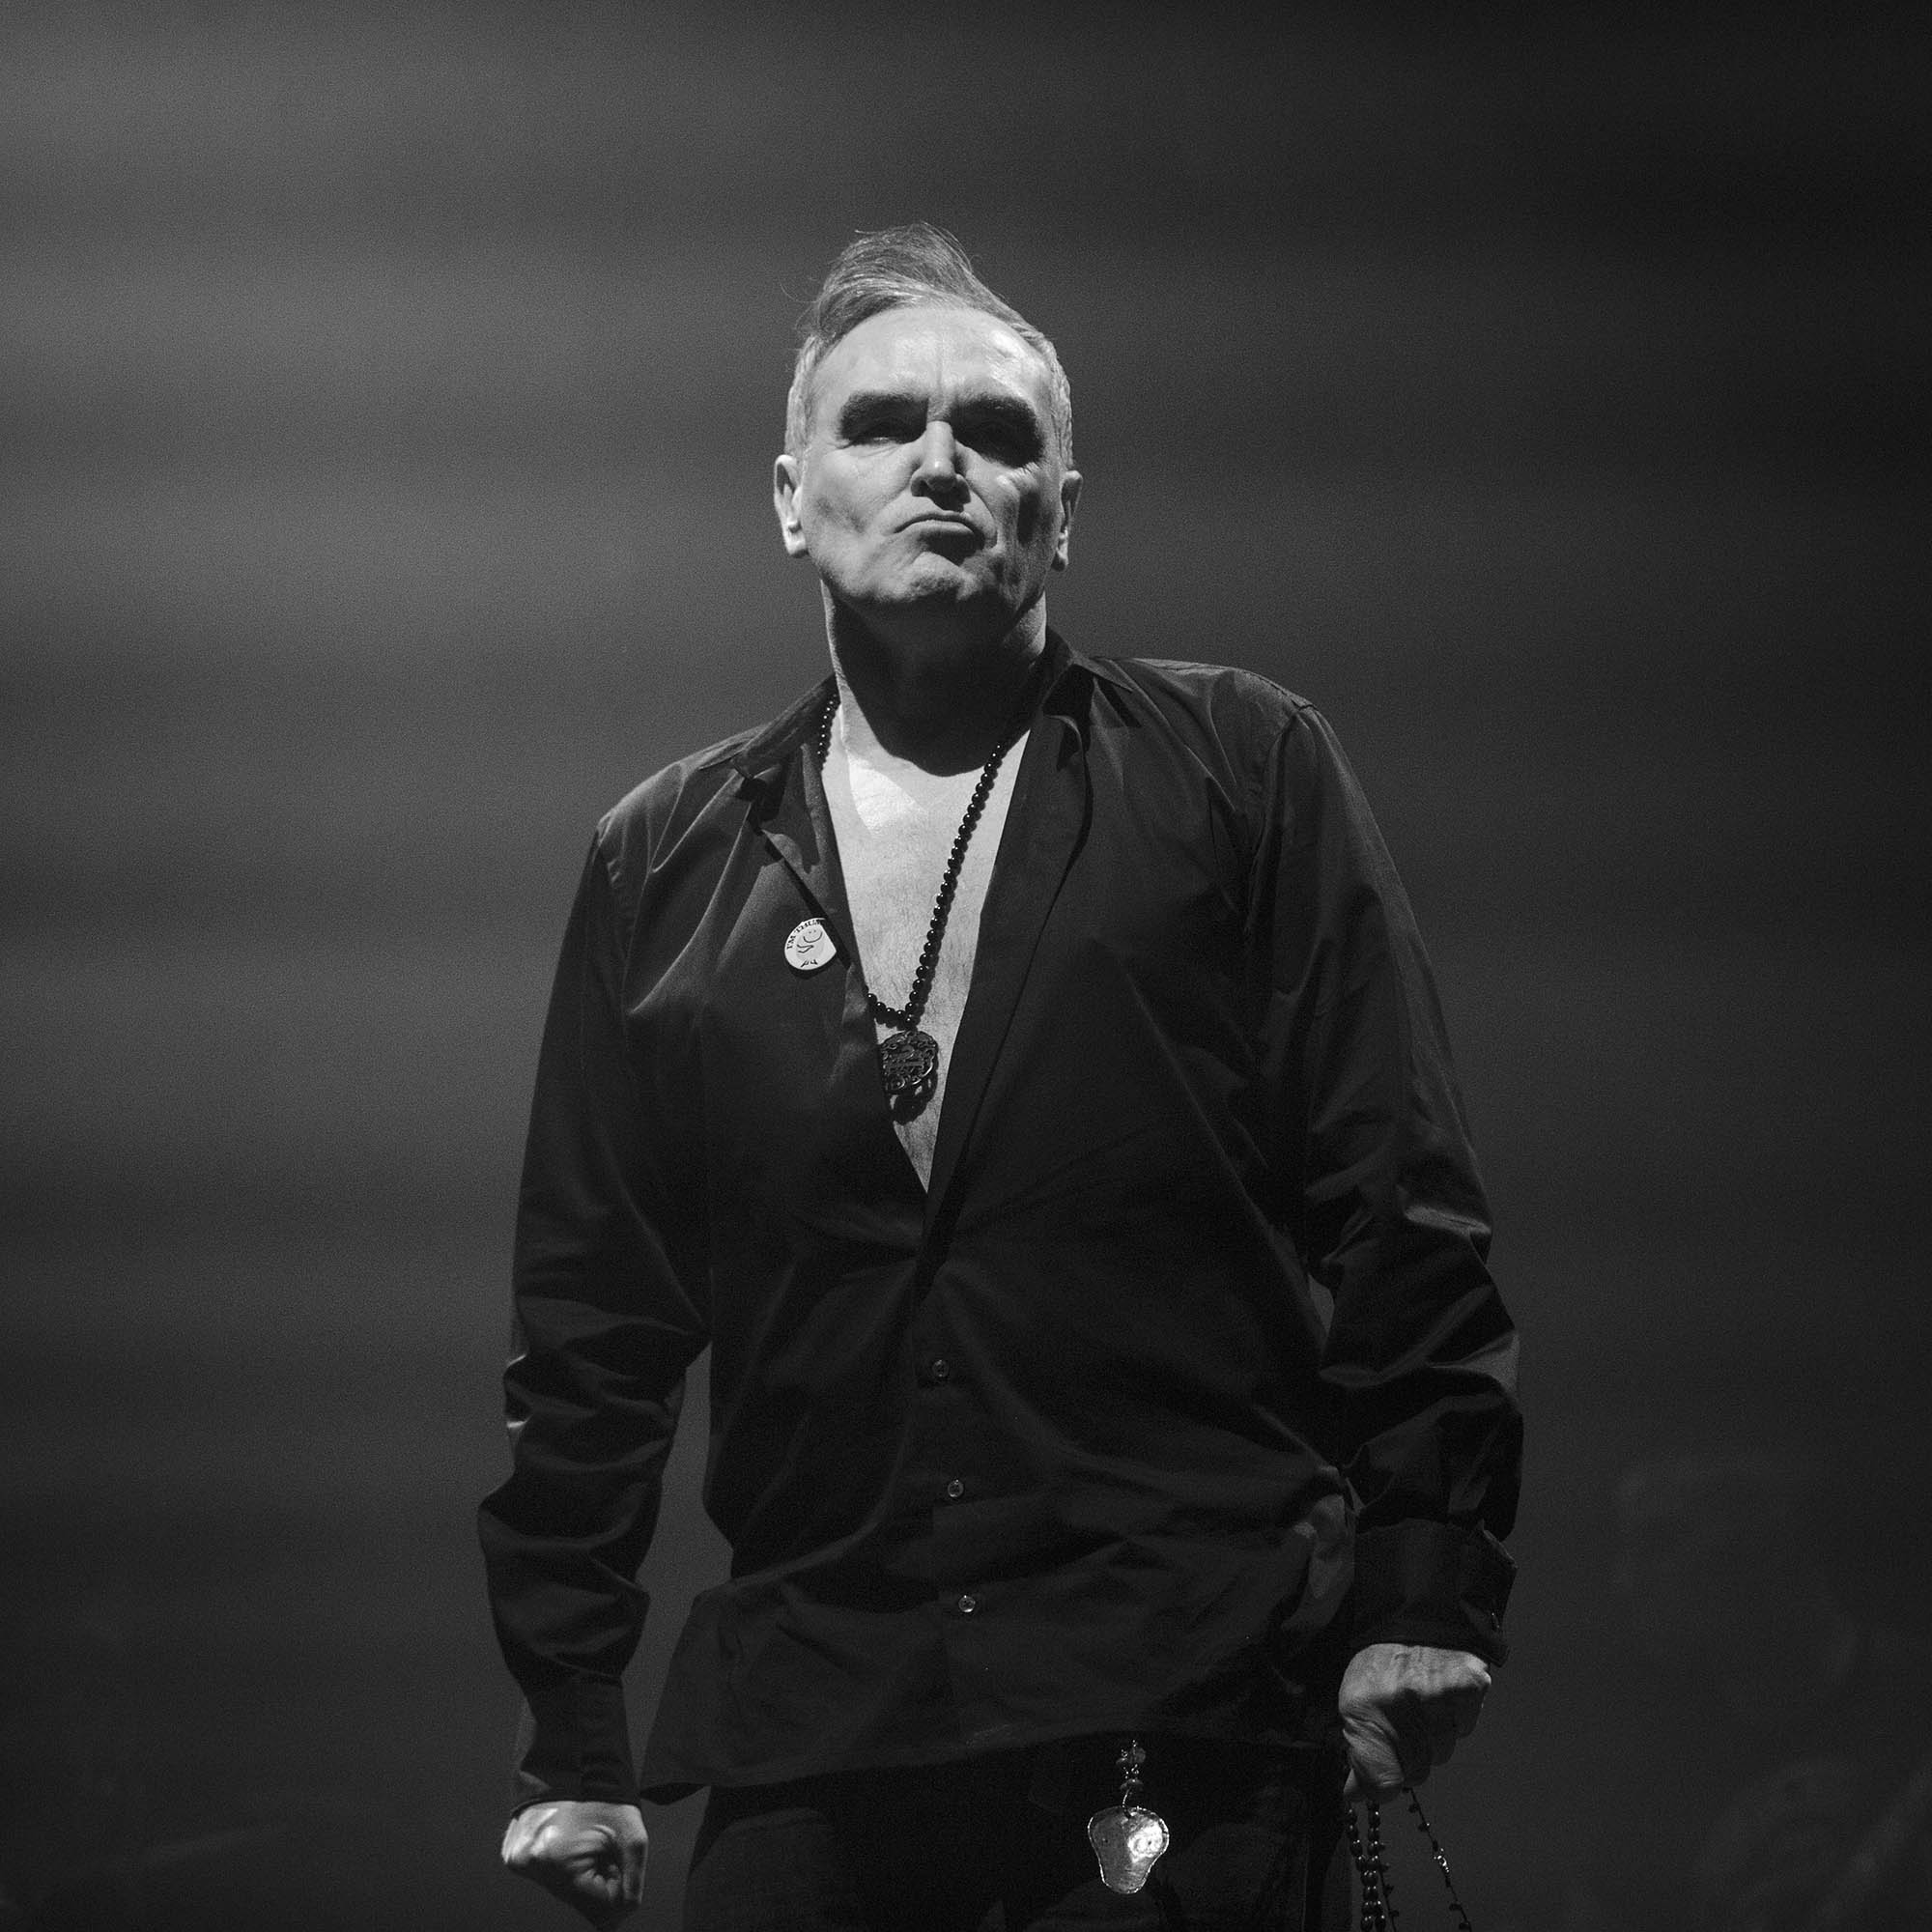 Morrissey scowls at the audience as he walks on stage at the NEC, Birmingham